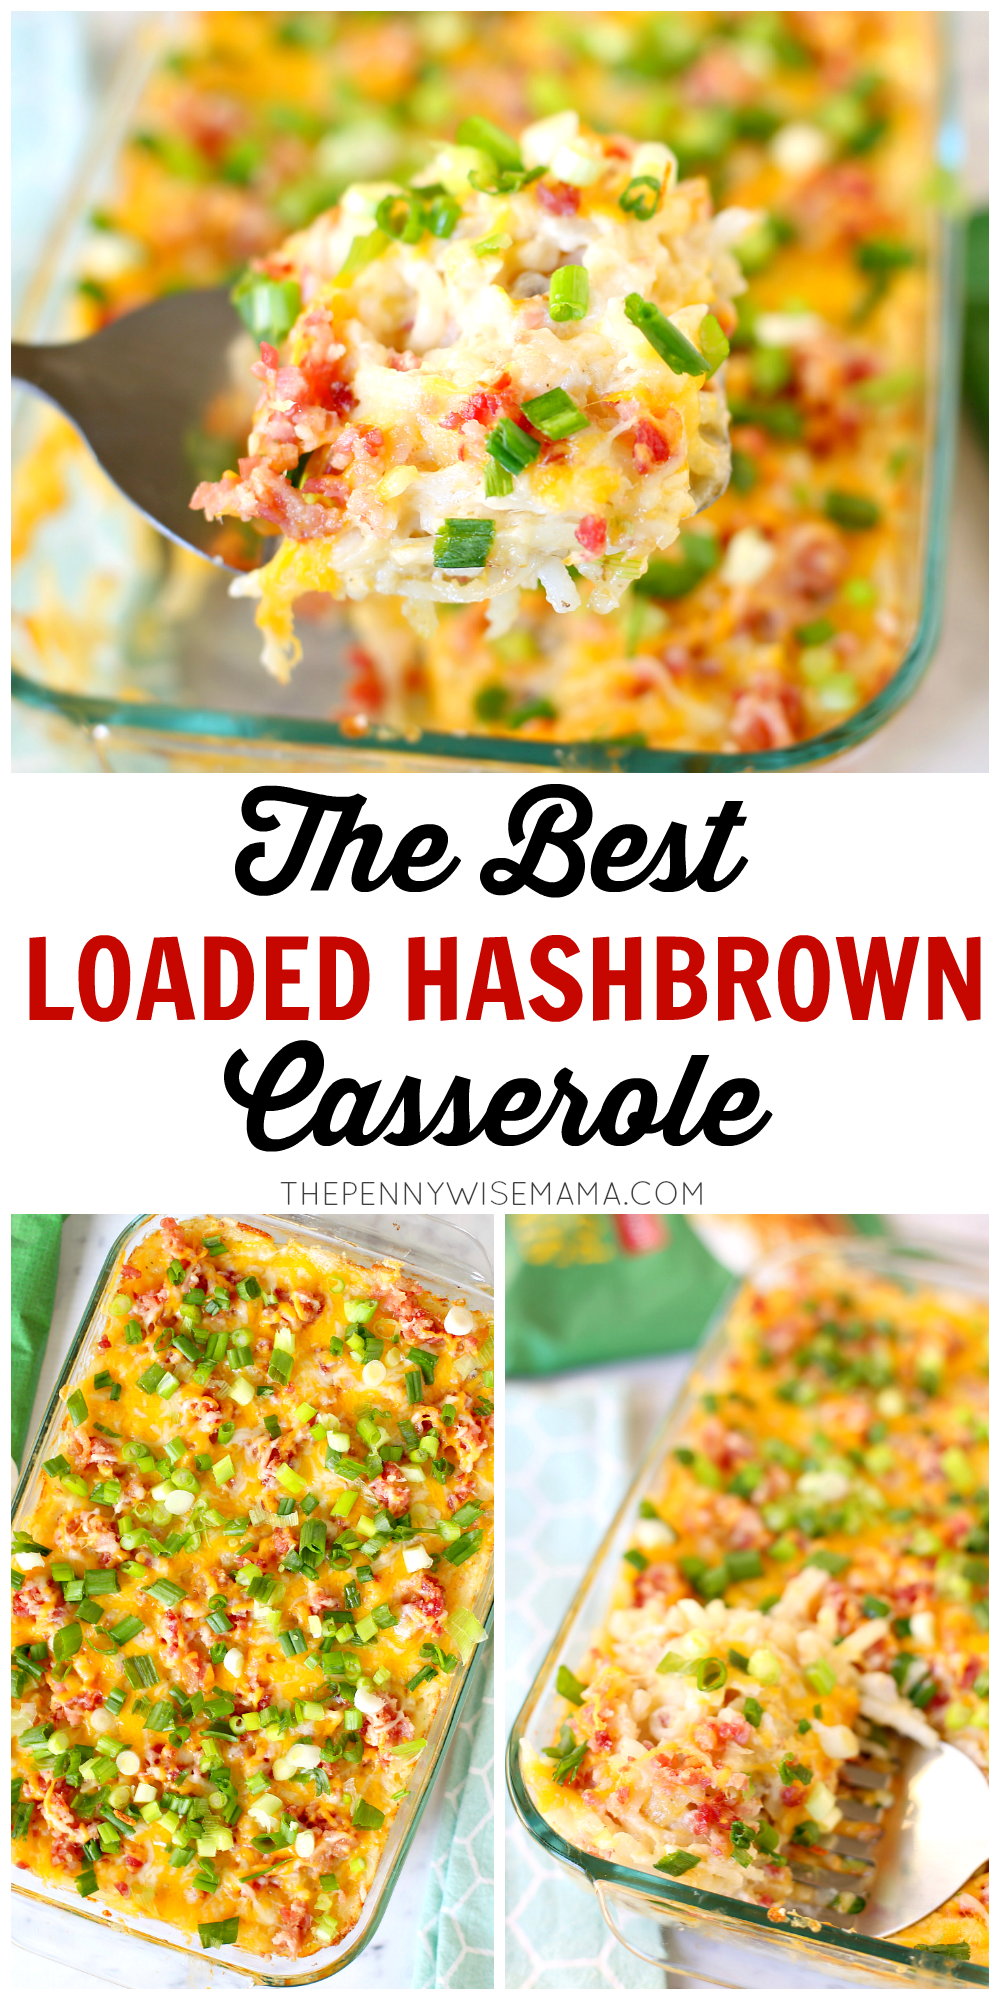 The BEST Loaded Hashbrown Casserole. This crowd favorite is so simple and delicious. Perfect for holiday dinners, potlucks or get-togethers.